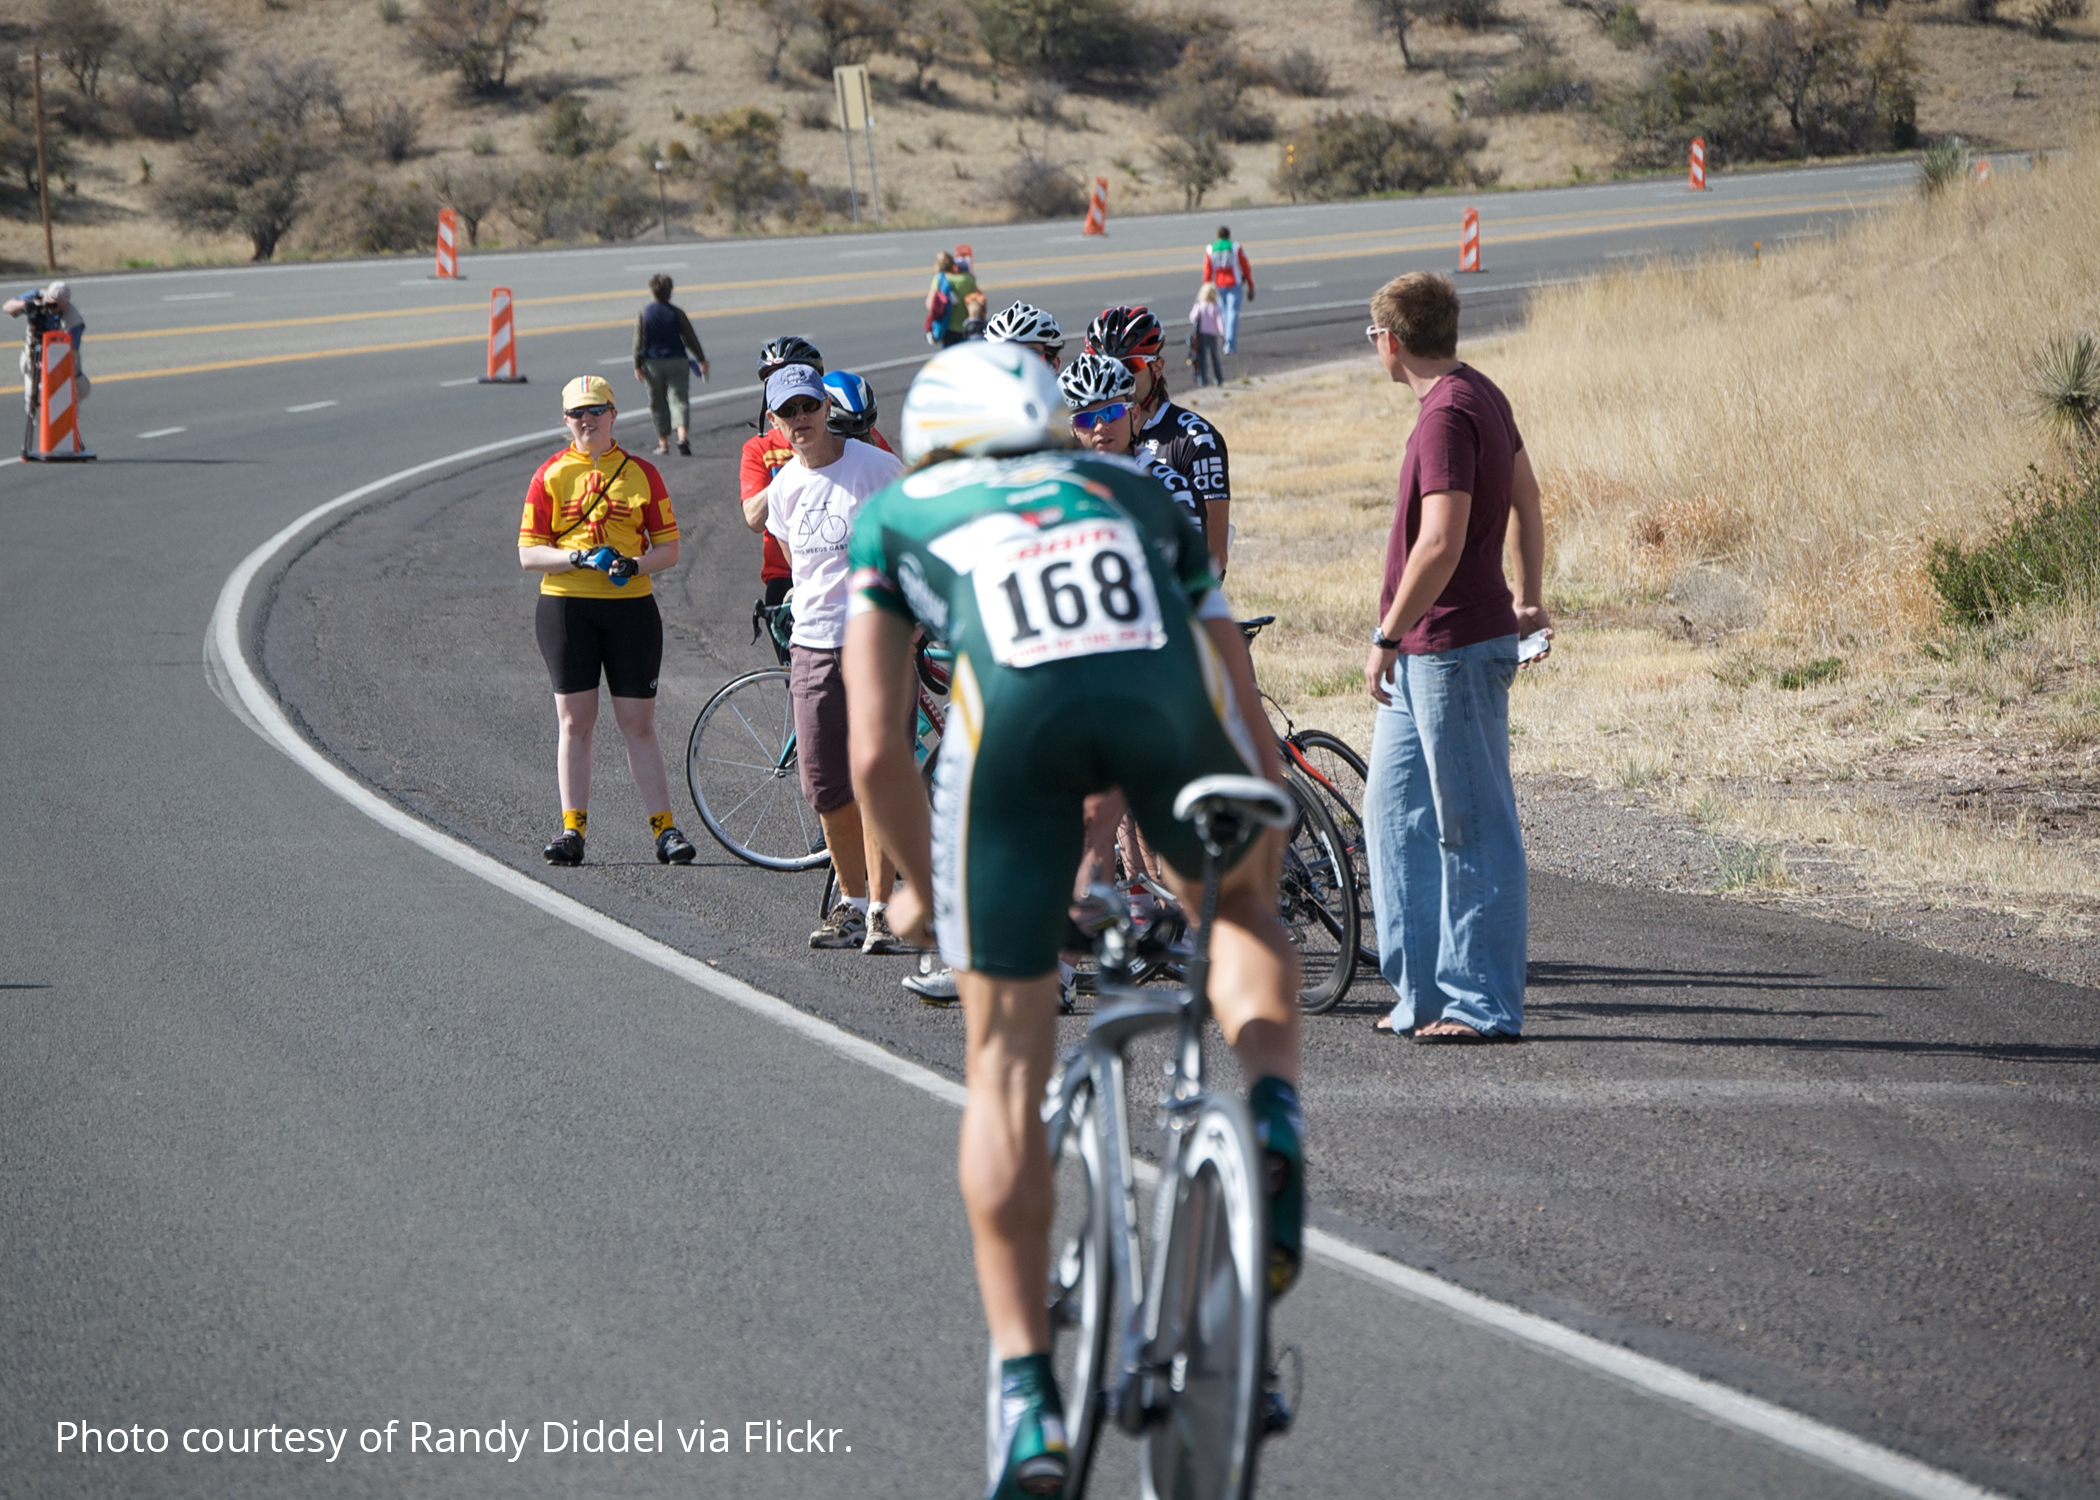 Tour of the Gila with a bicyclist in the foreground. Photo courtesy of Randy Diddel via Flickr.